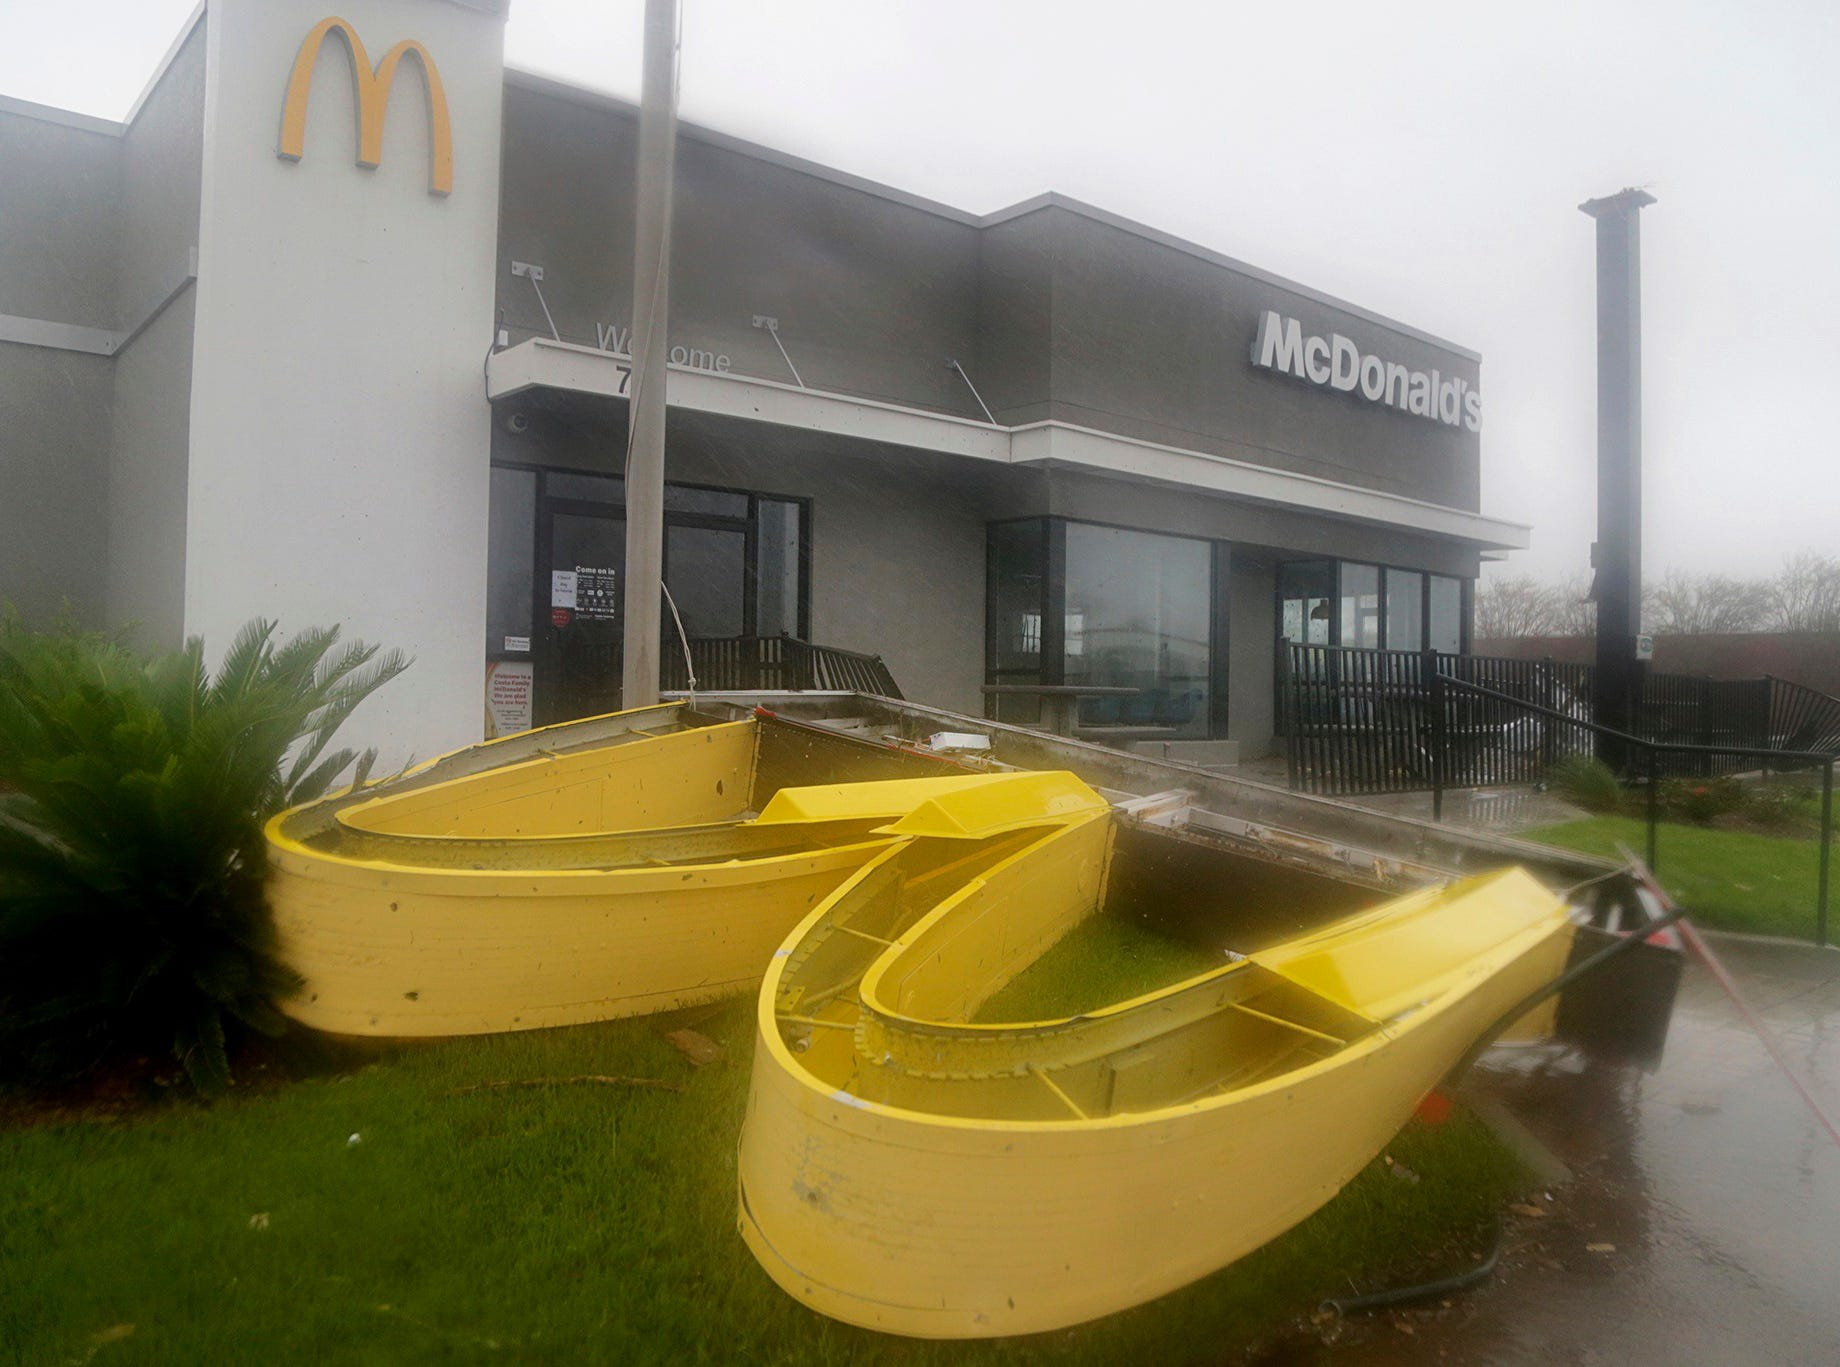 This photo shows a McDonald's restaurant damaged after Hurricane Michael went through the area in Panama City, Fla., Wednesday, Oct. 10, 2018. Supercharged by abnormally warm waters in the Gulf of Mexico, Hurricane Michael slammed into the Florida Panhandle with terrifying winds of 155 mph Wednesday, splintering homes and submerging neighborhoods before continuing its march inland. (Pedro Portal/Miami Herald via AP)